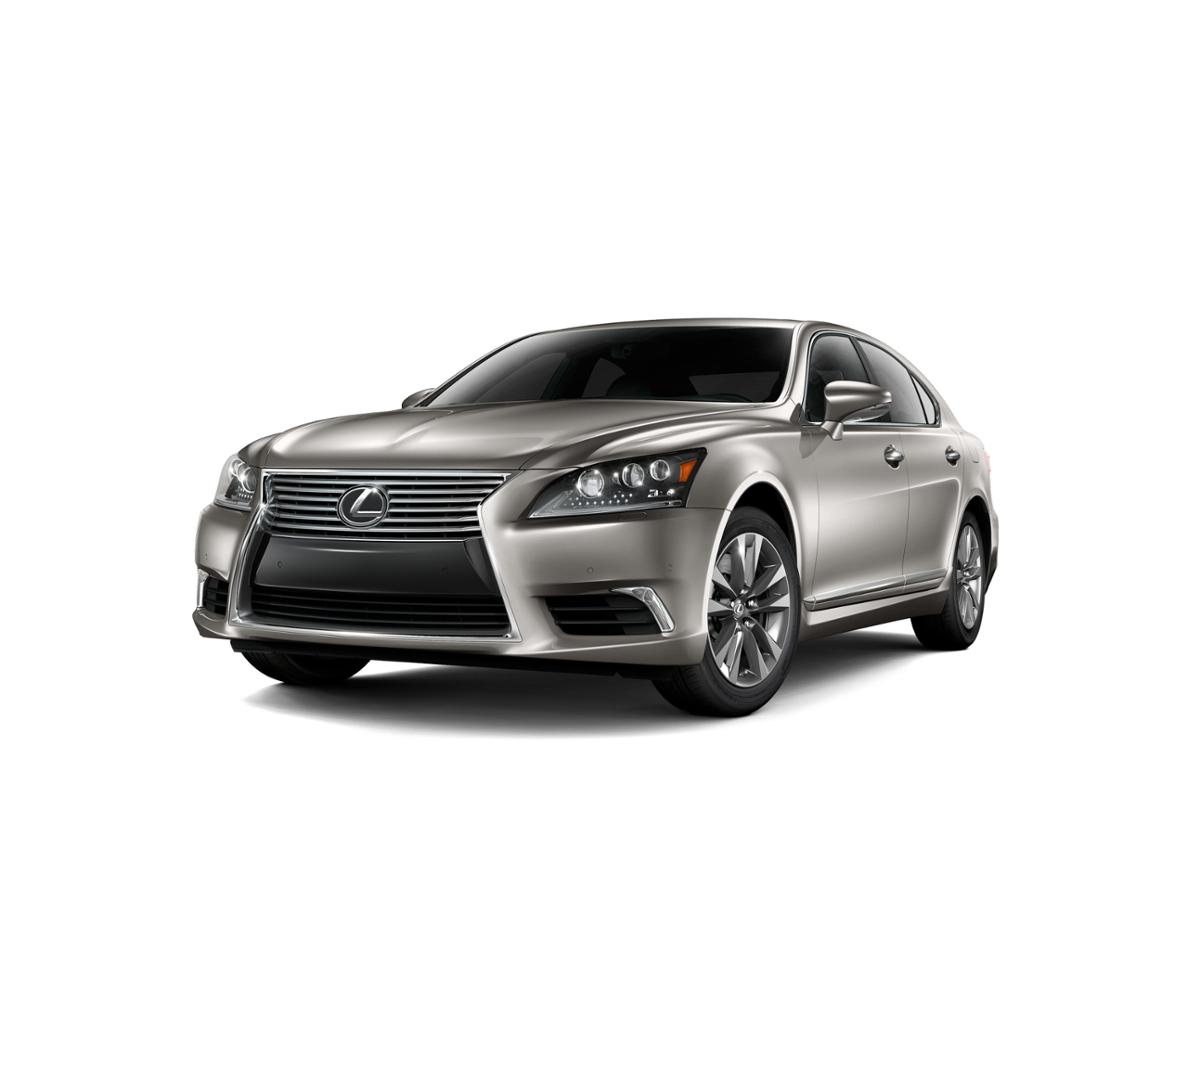 Owings Mills Lexus >> Owings Mills Atomic Silver 2017 Lexus LS 460: New Car for Sale -029427